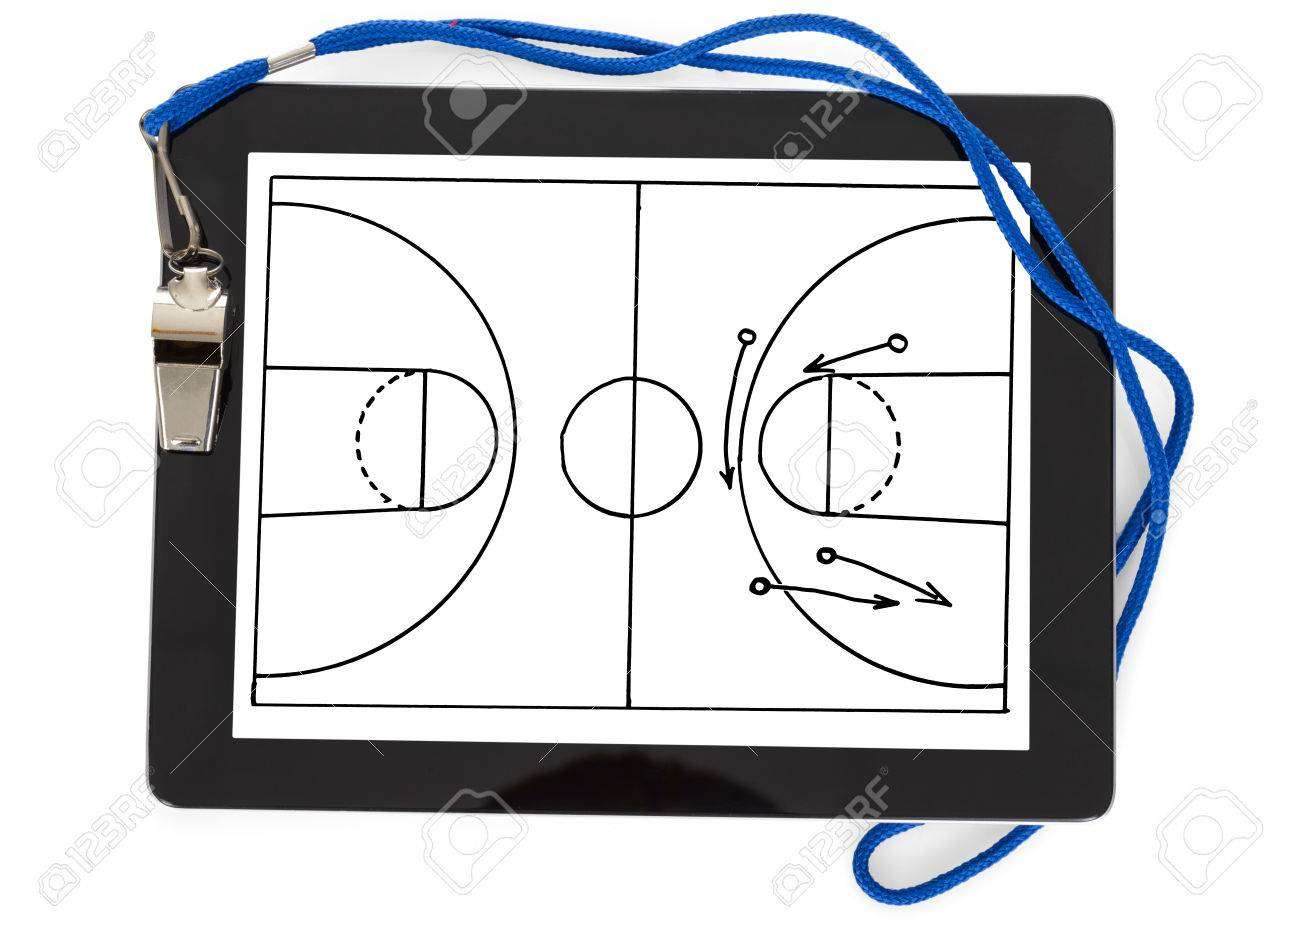 Soccer Tactic Diagram And Whistle On Digital Tablet Isolated.. Stock ...